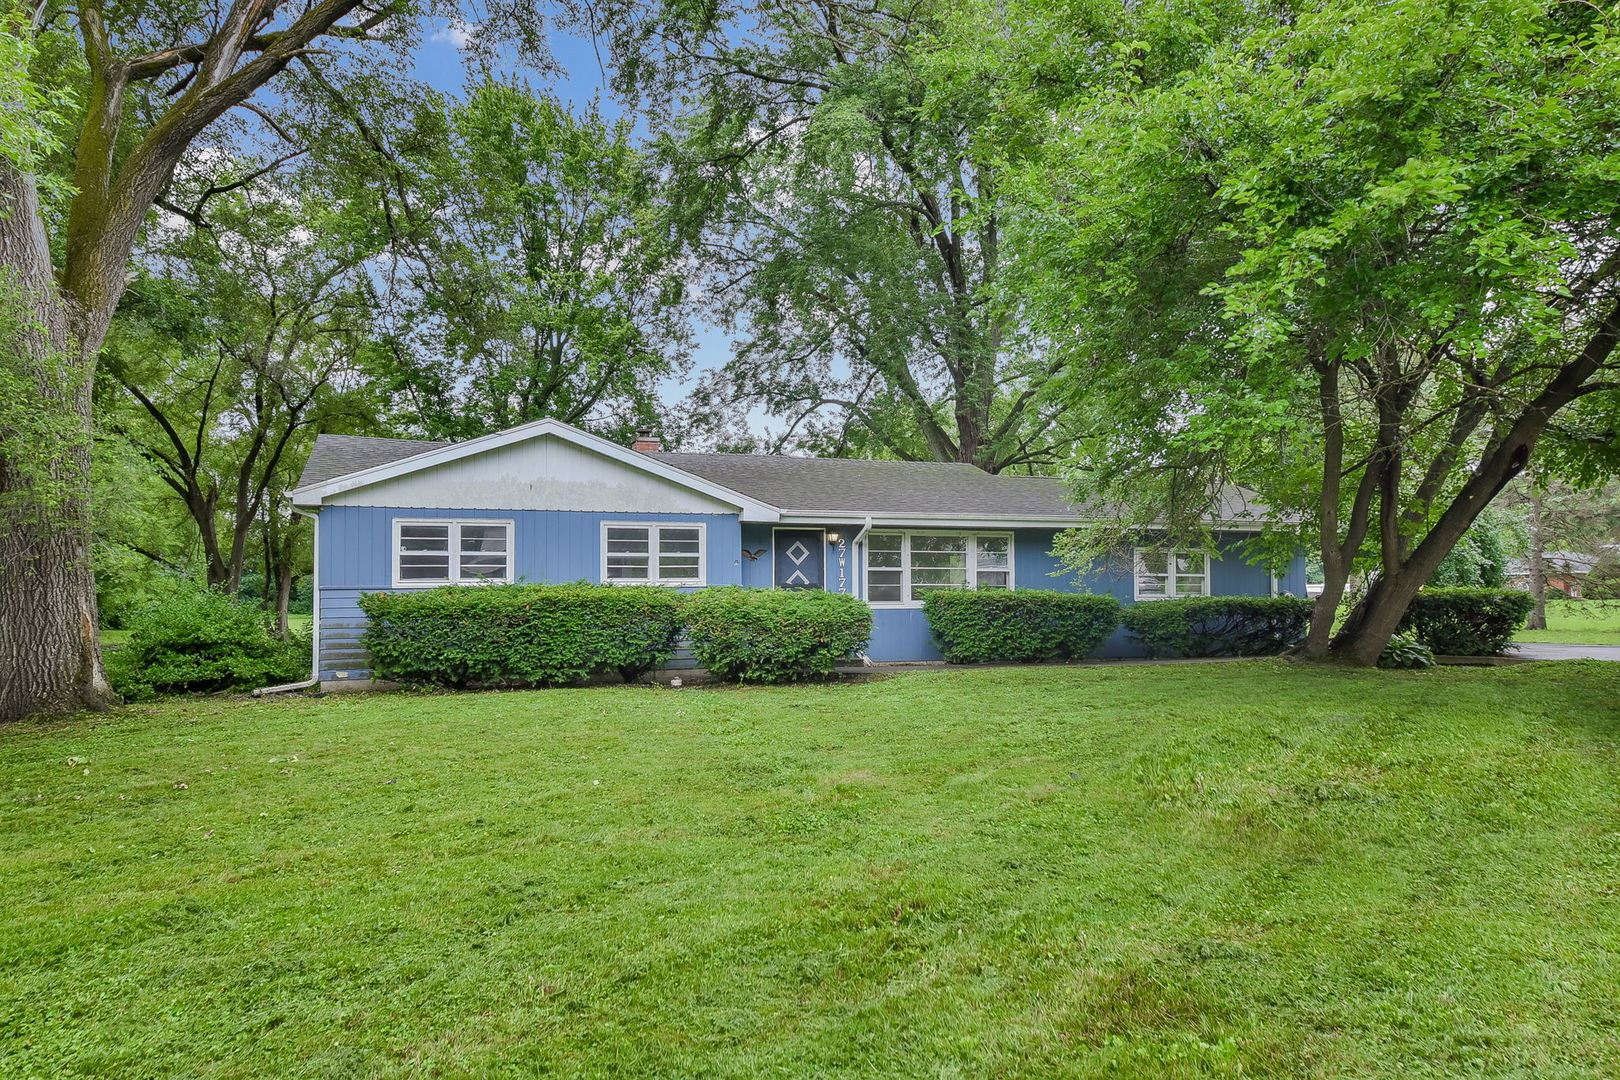 27W177 Vale Road, West Chicago, IL 60185 - #: 11154872